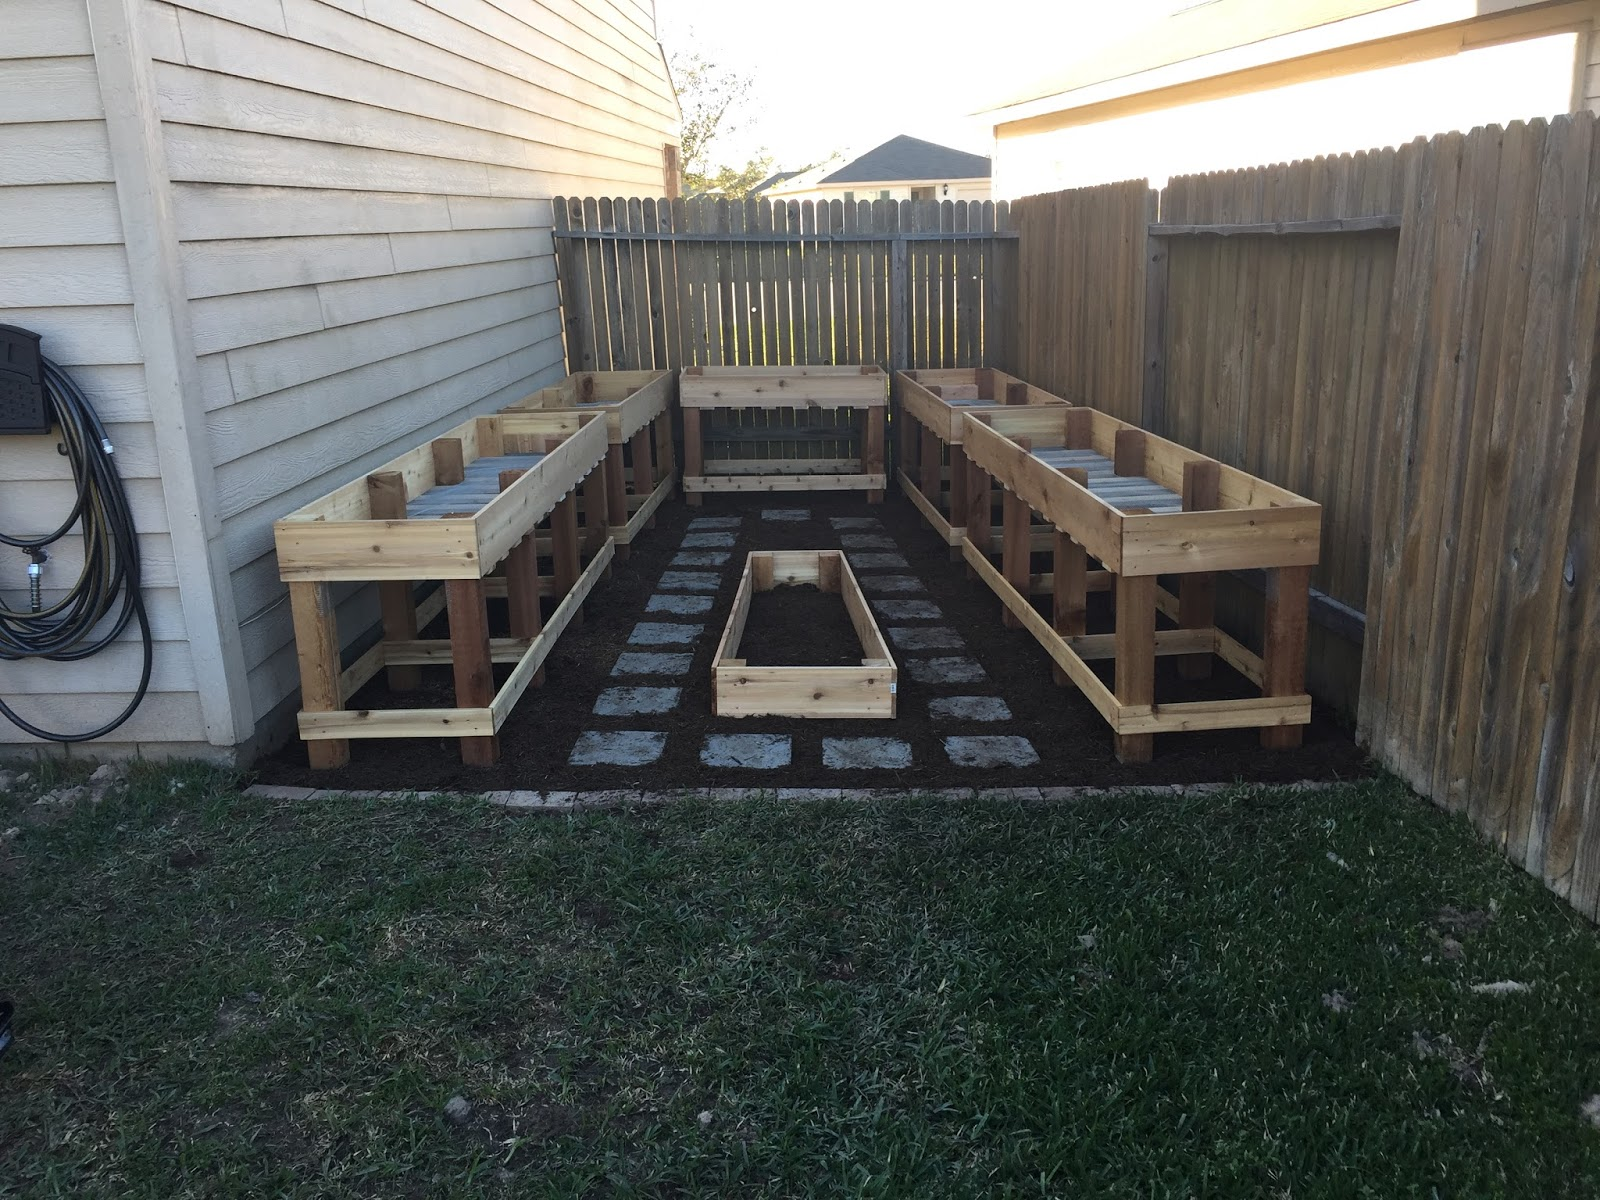 Making a change today will forever change tomorrow diy for Diy patio bed